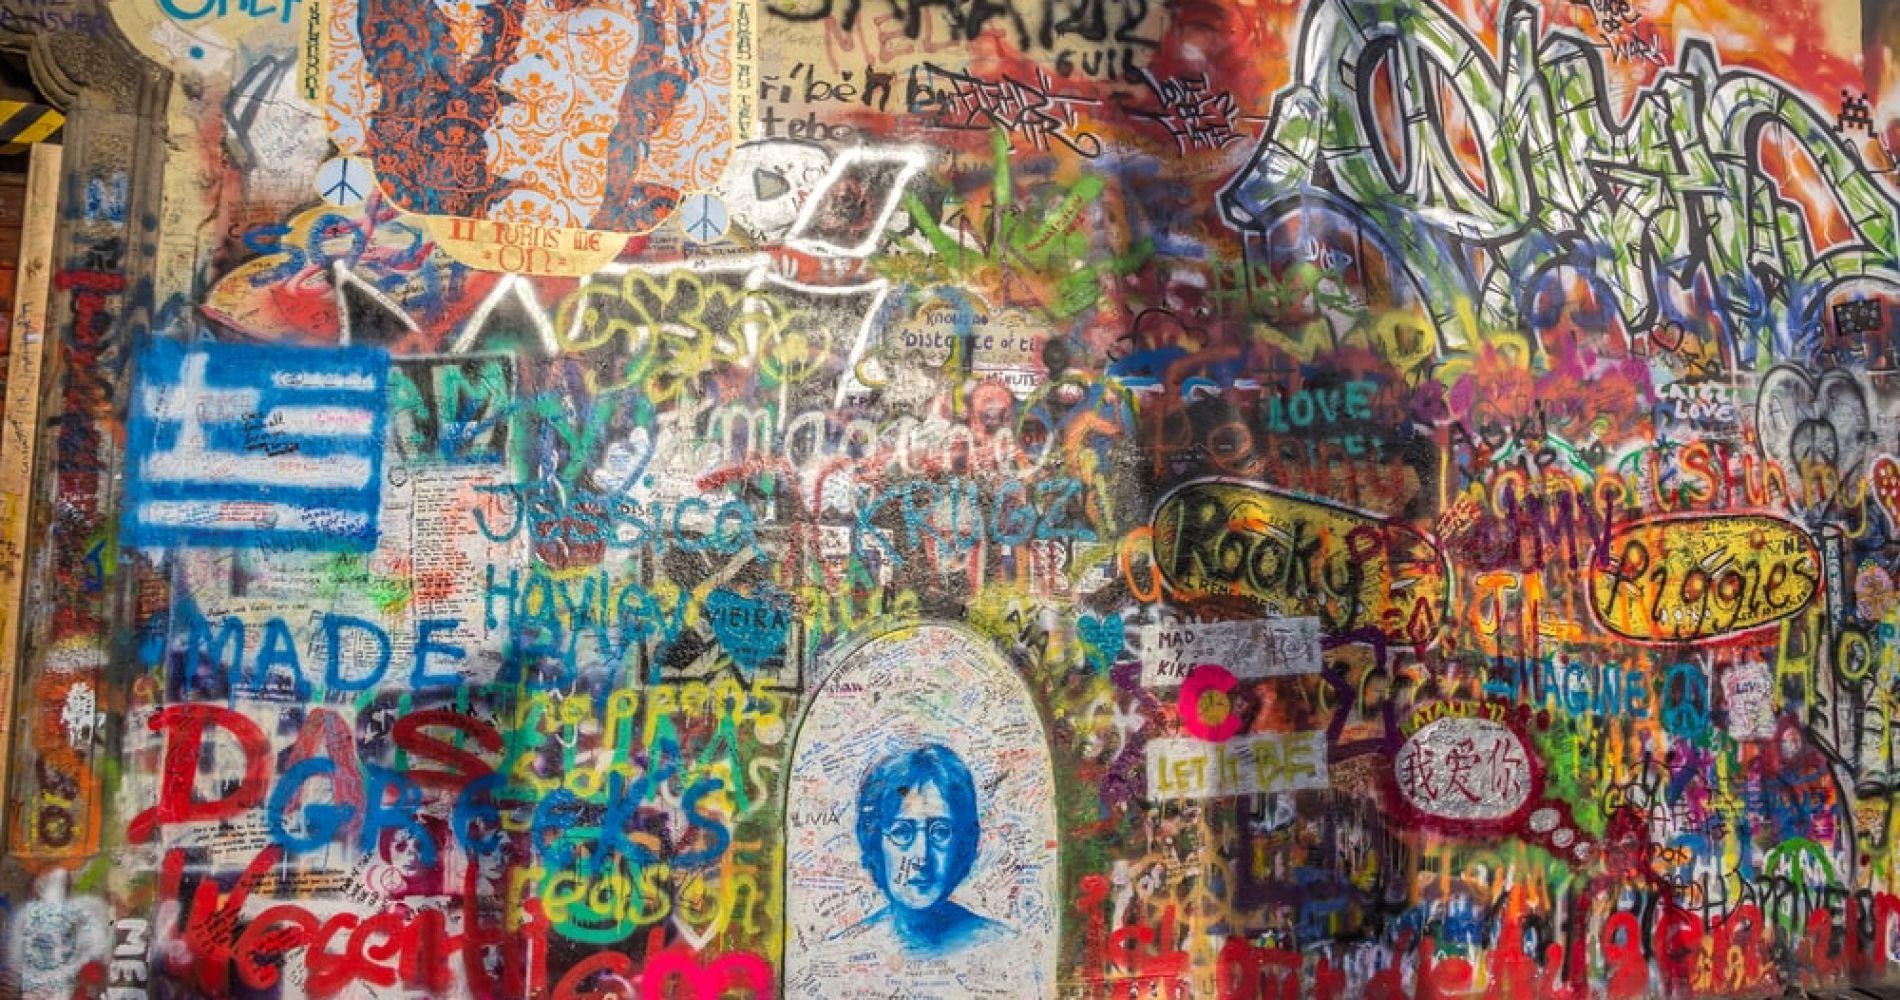 Visit the Lennon Wall in Prague